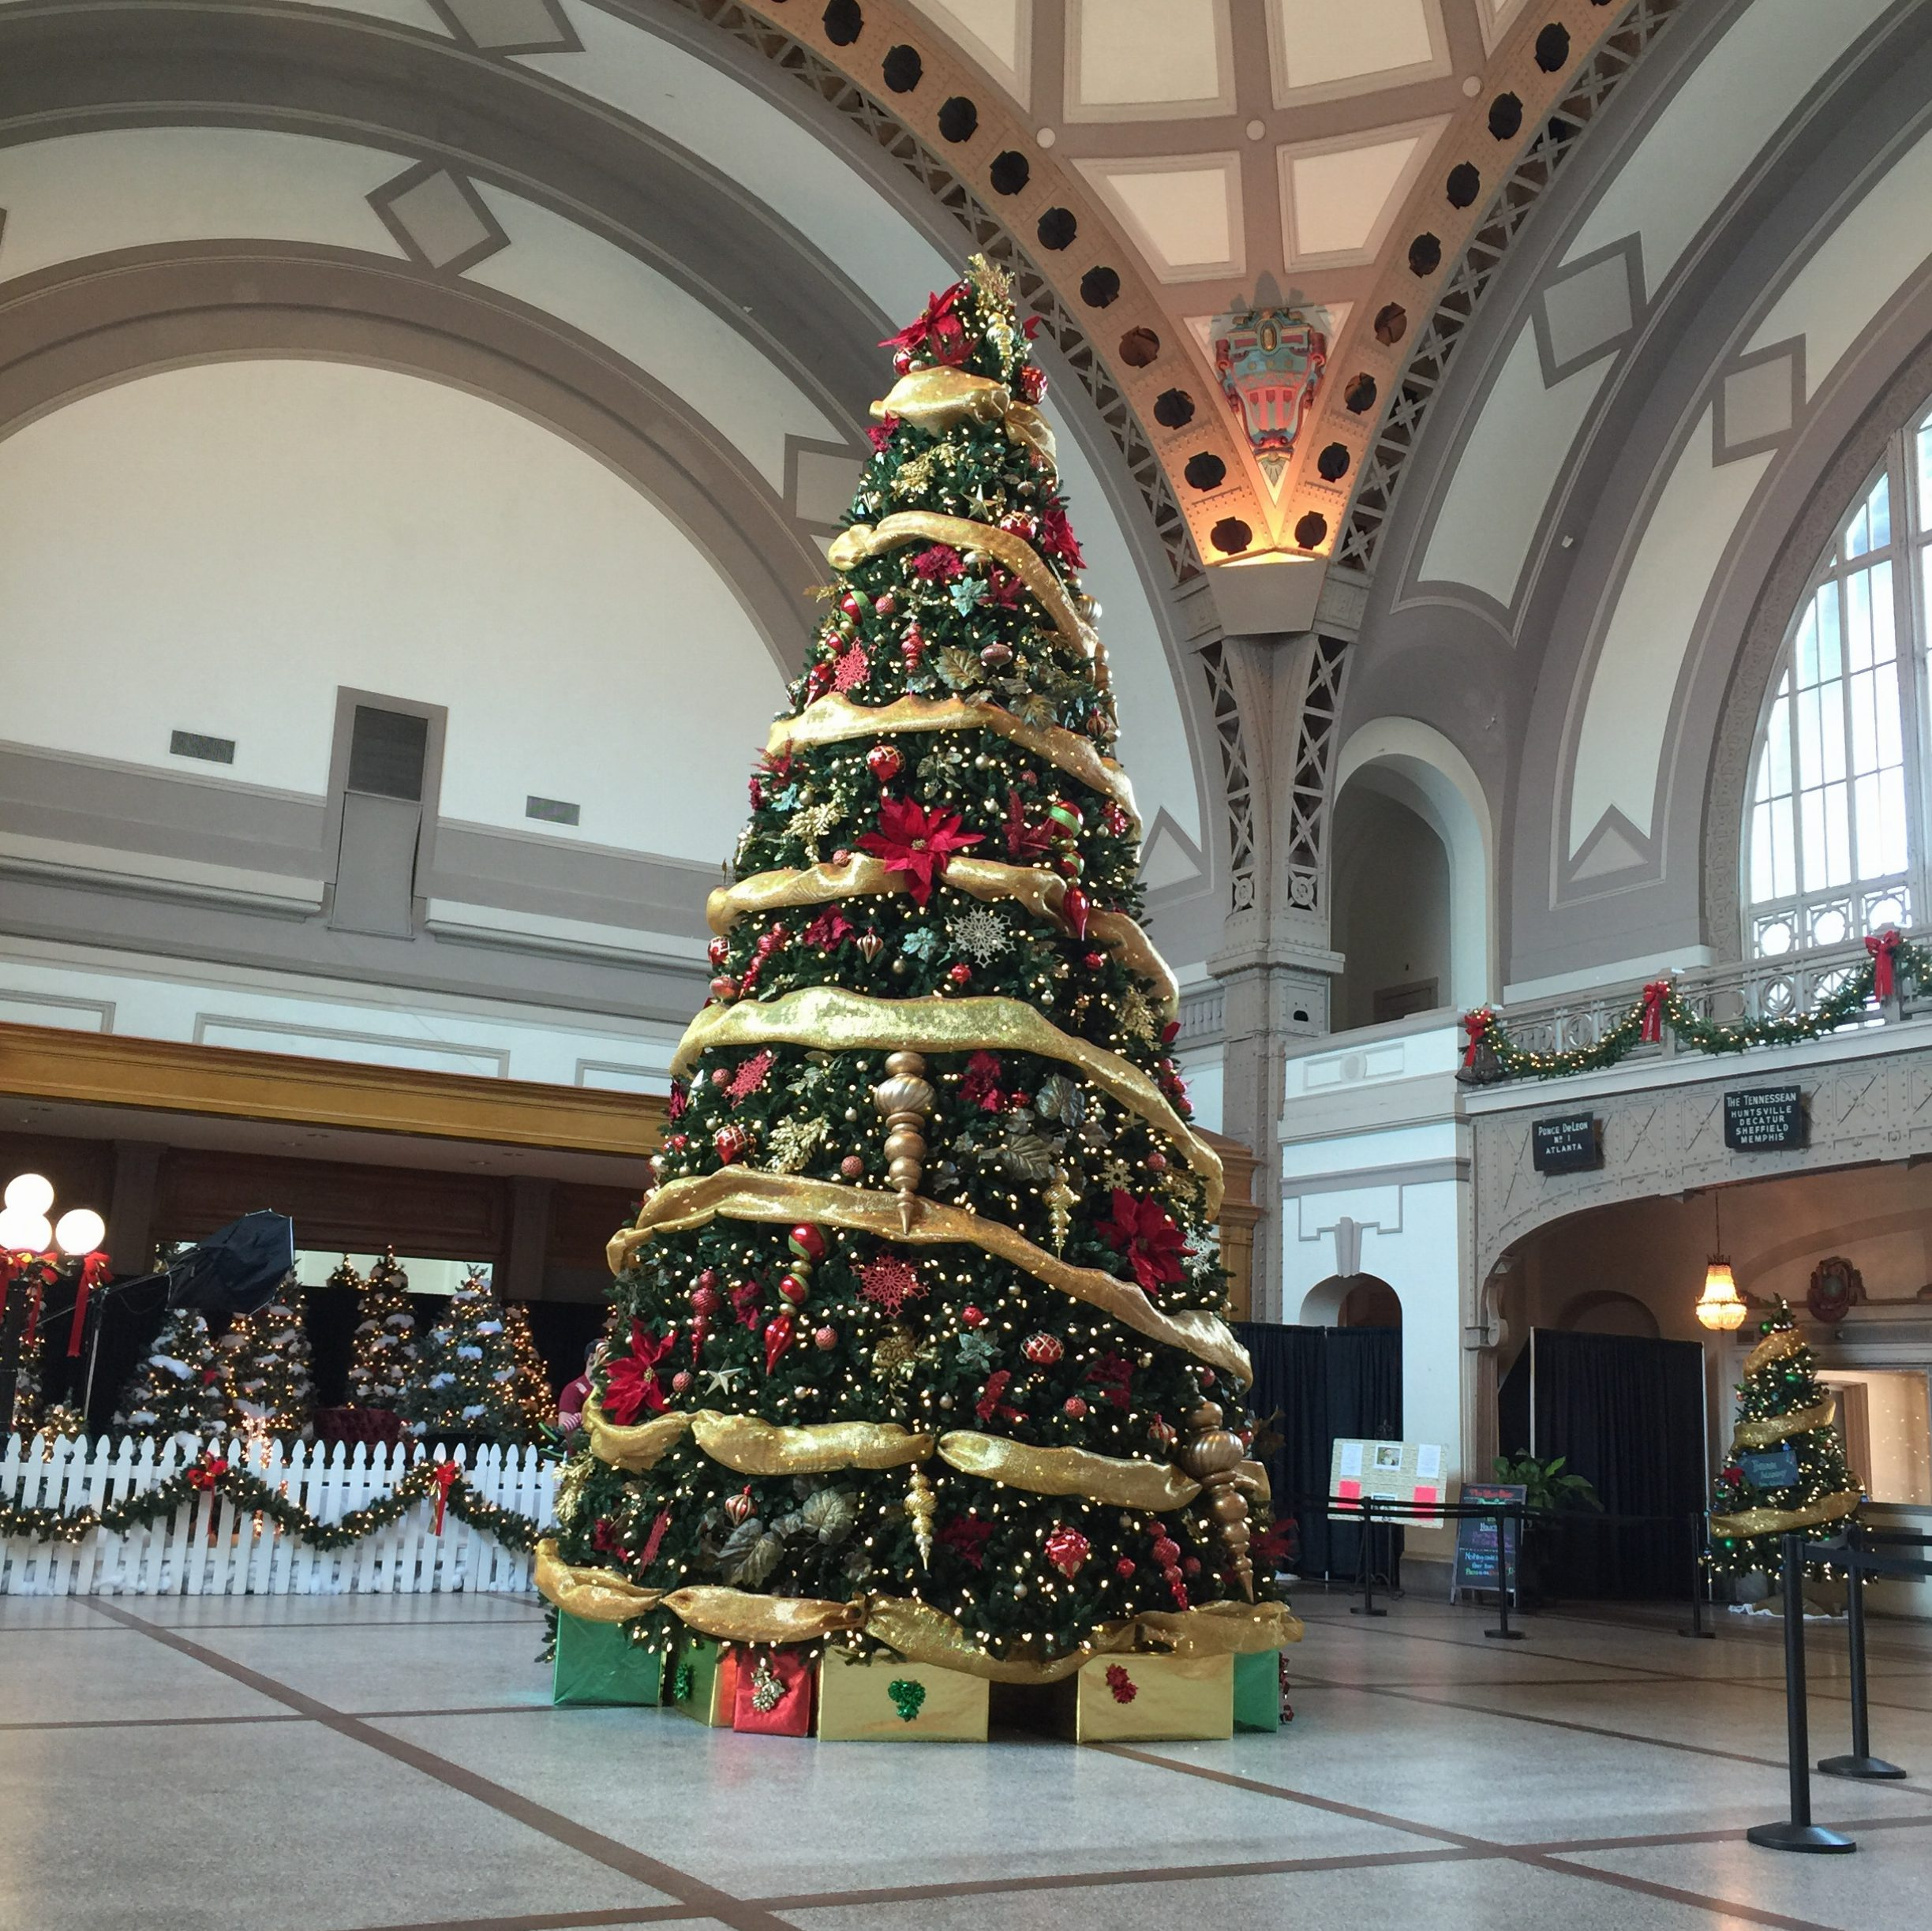 Lobby at Christmas at the Chattanooga Choo Choo Hotel from Spinach Tiger